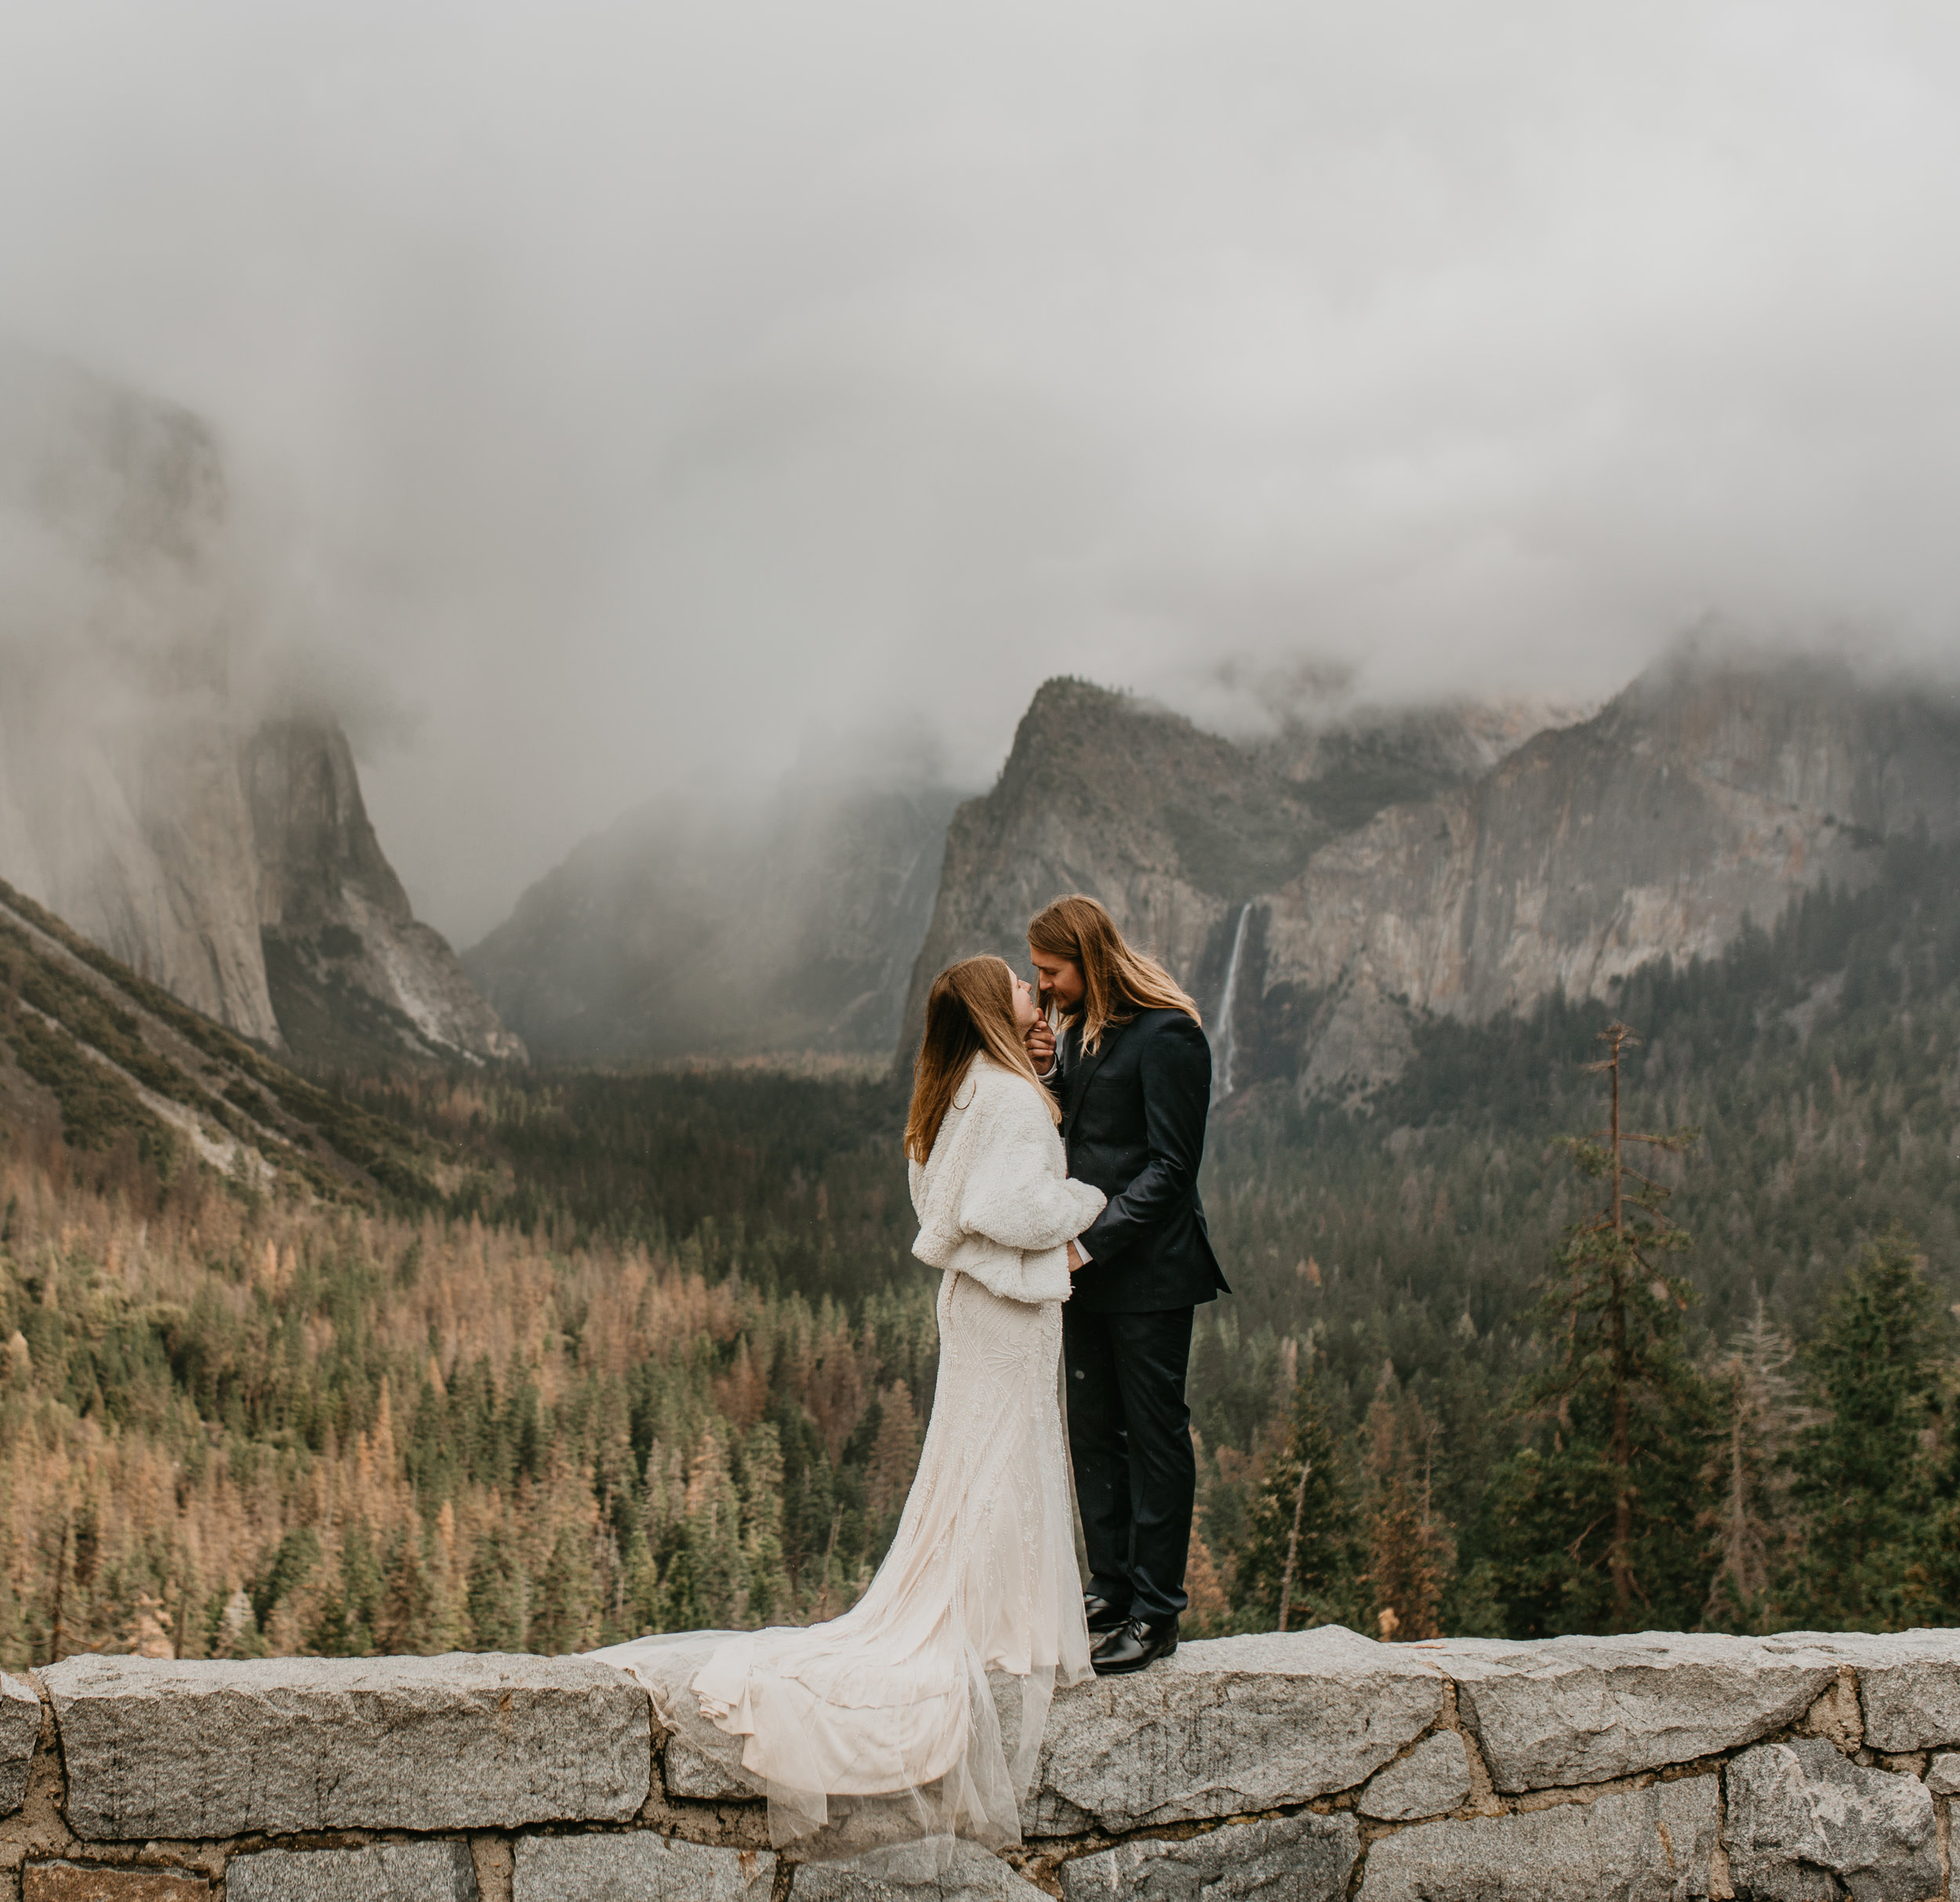 nicole-daacke-photography-yousemite-national-park-elopement-photographer-winter-cloud-moody-elope-inspiration-yosemite-valley-tunnel-view-winter-cloud-fog-weather-wedding-photos-11.jpg